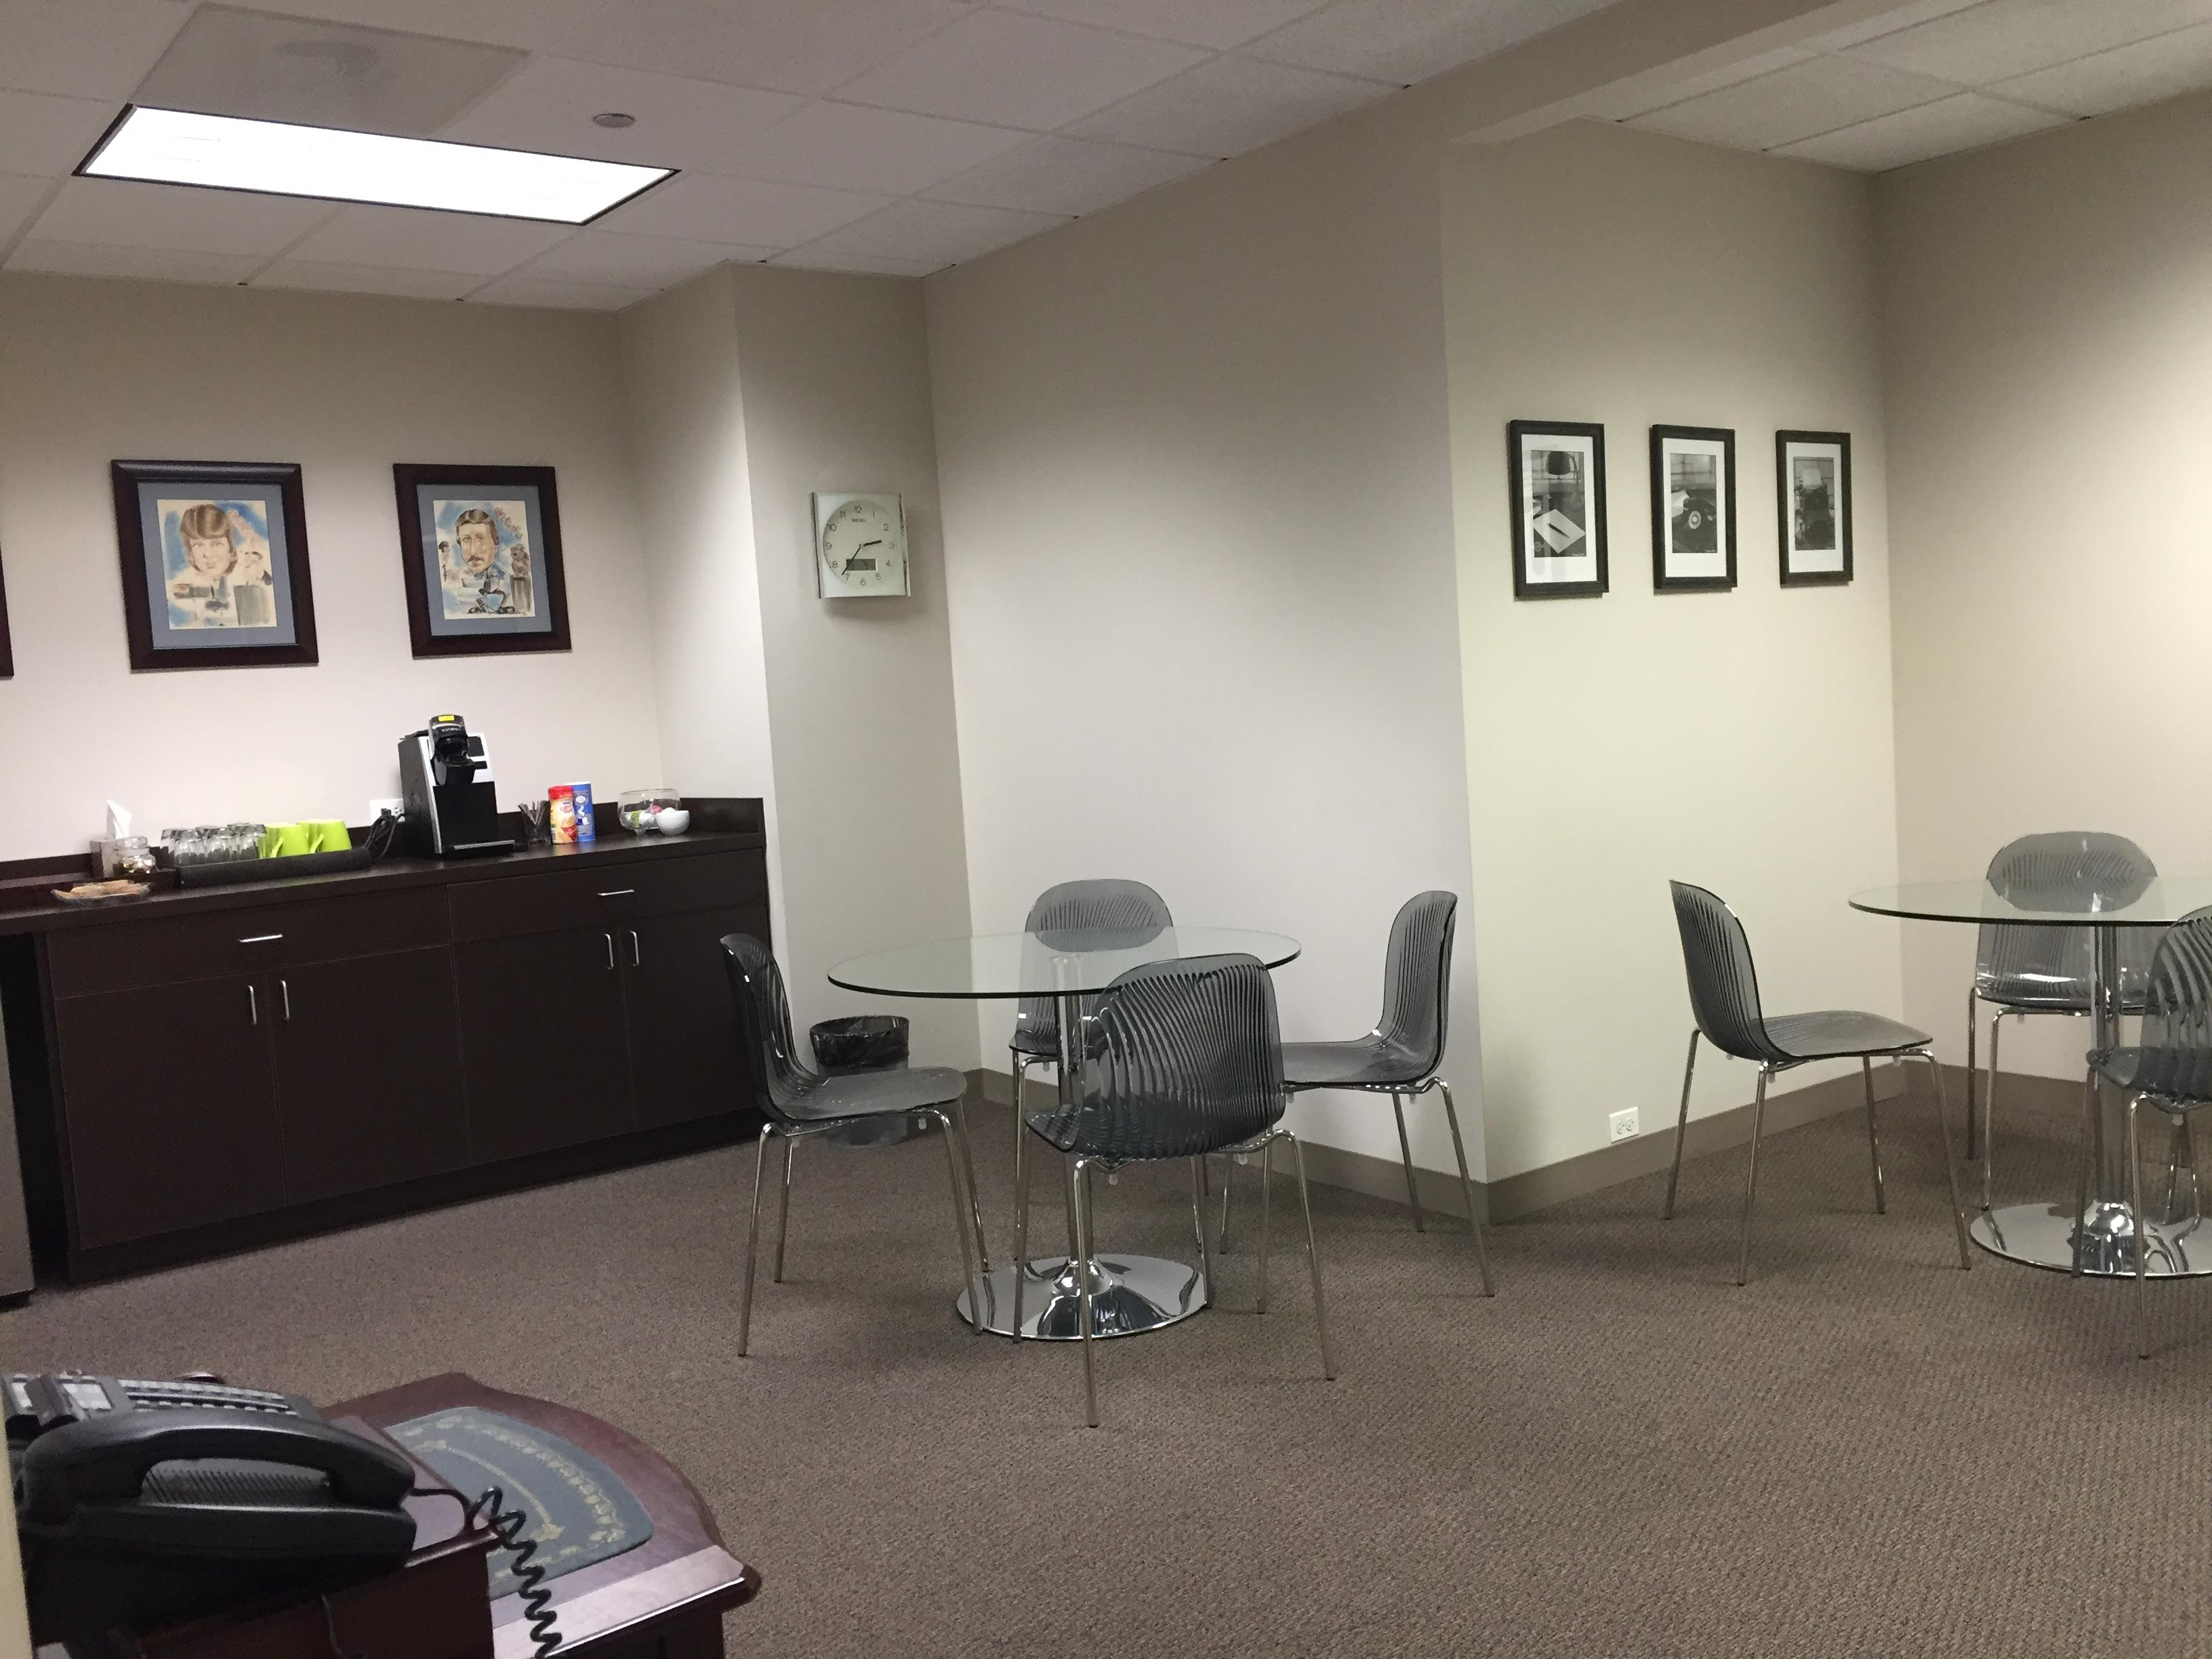 Waiting area provided by Urlaub Bowen & Associates available in our Chicago meeting venue.